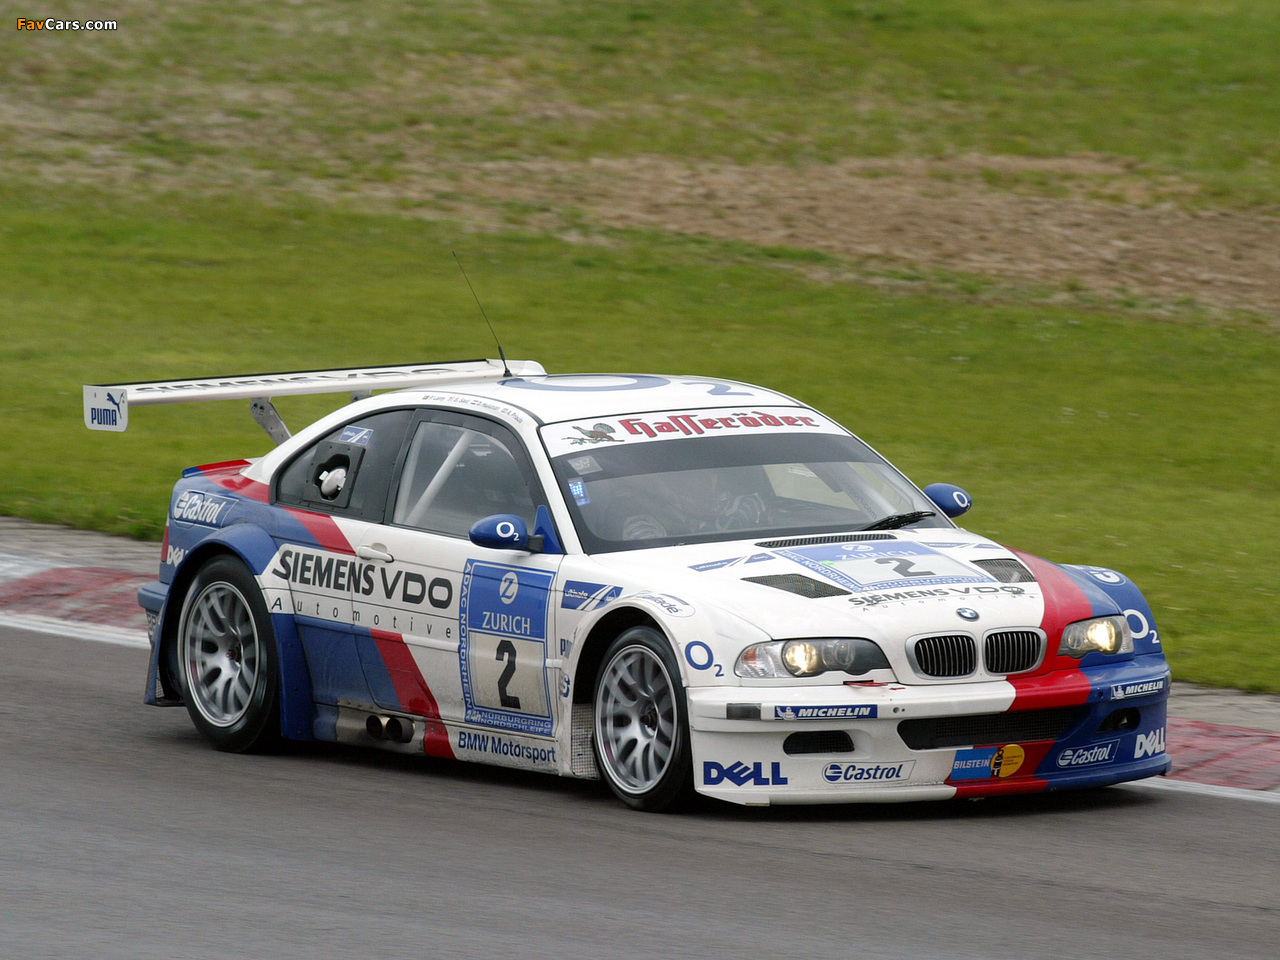 Bmw M3 Gtr E46 2001 Images 1280x960 HD Wallpapers Download free images and photos [musssic.tk]